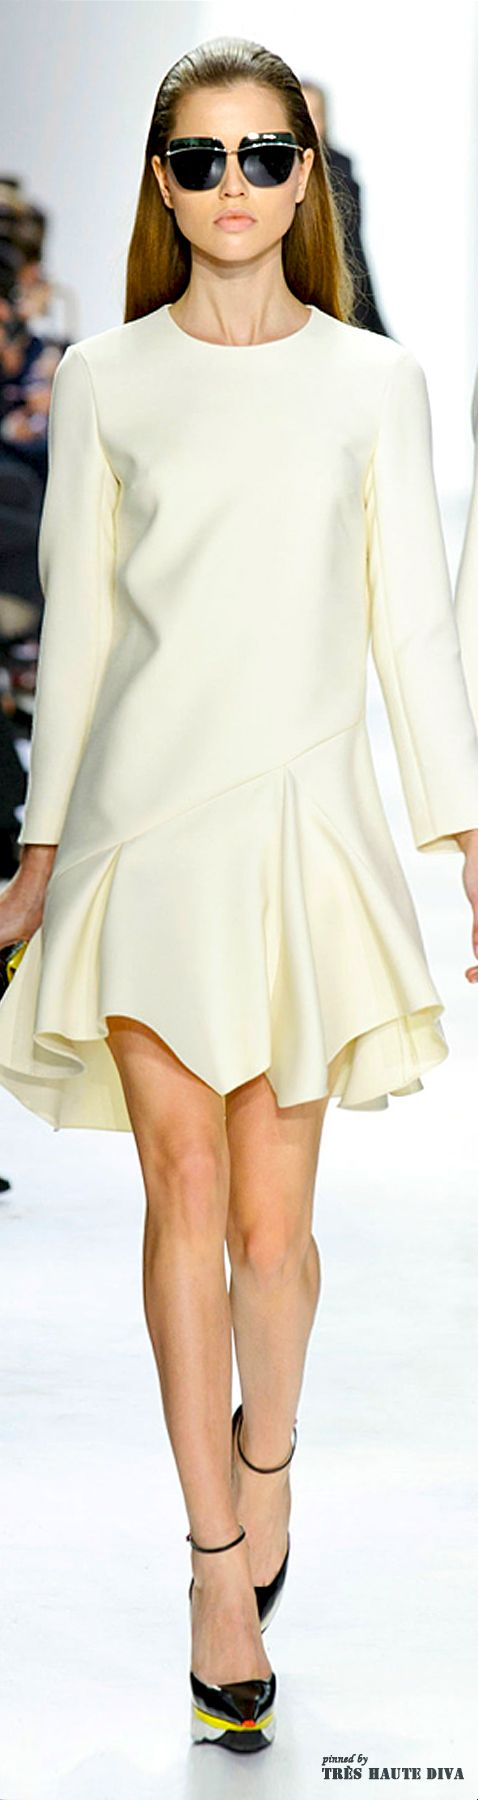 #Paris Fashion Week Christian #Dior Fall 2014 RTW